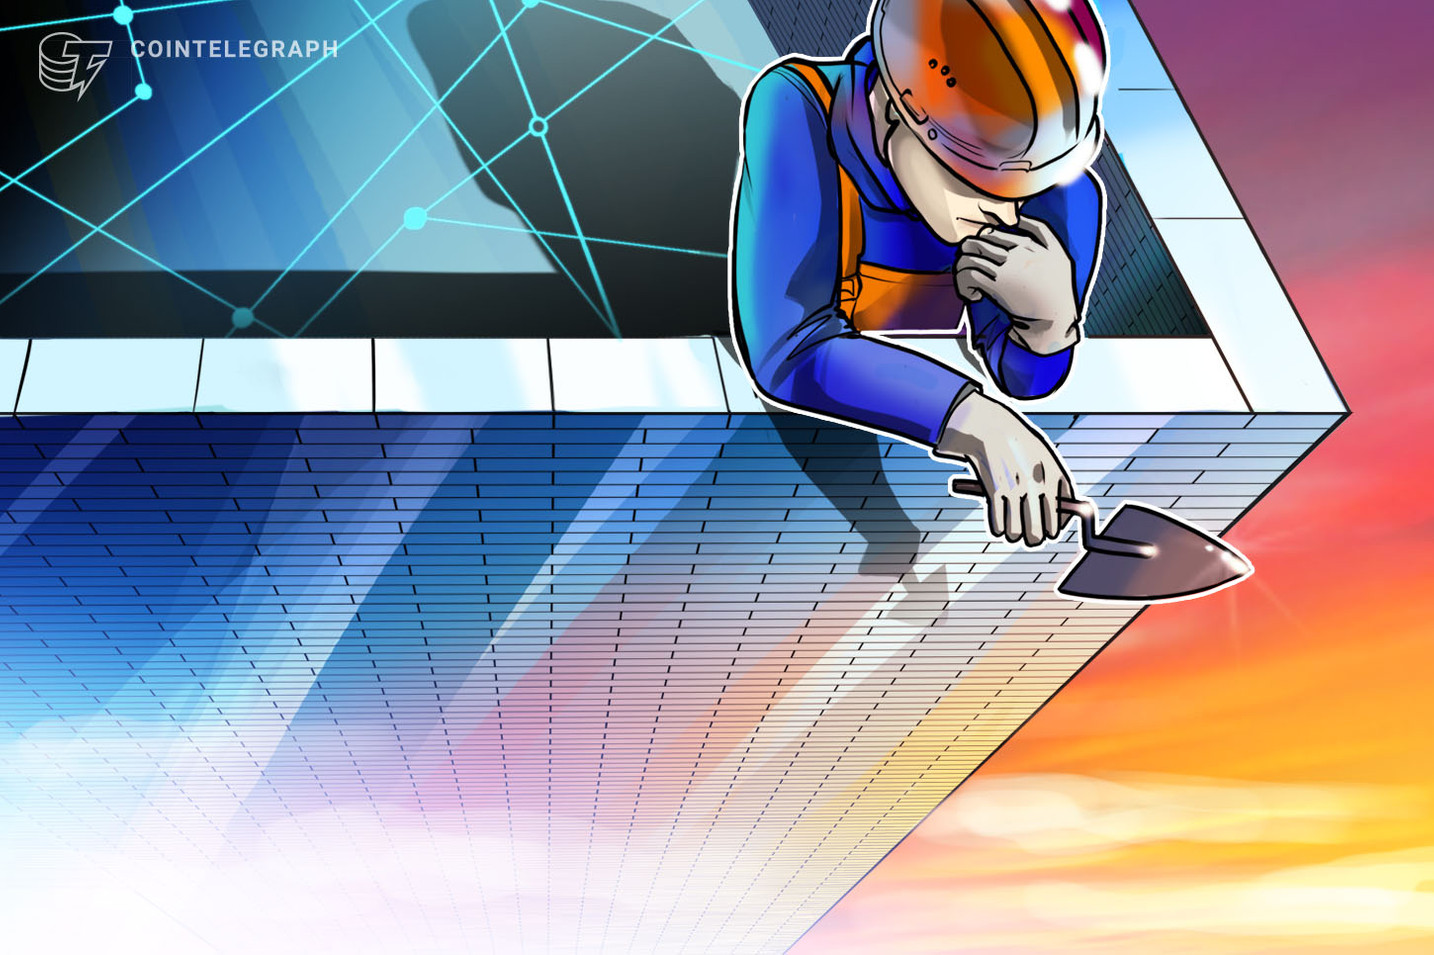 Iranian crypto miners using household energy will face large fines